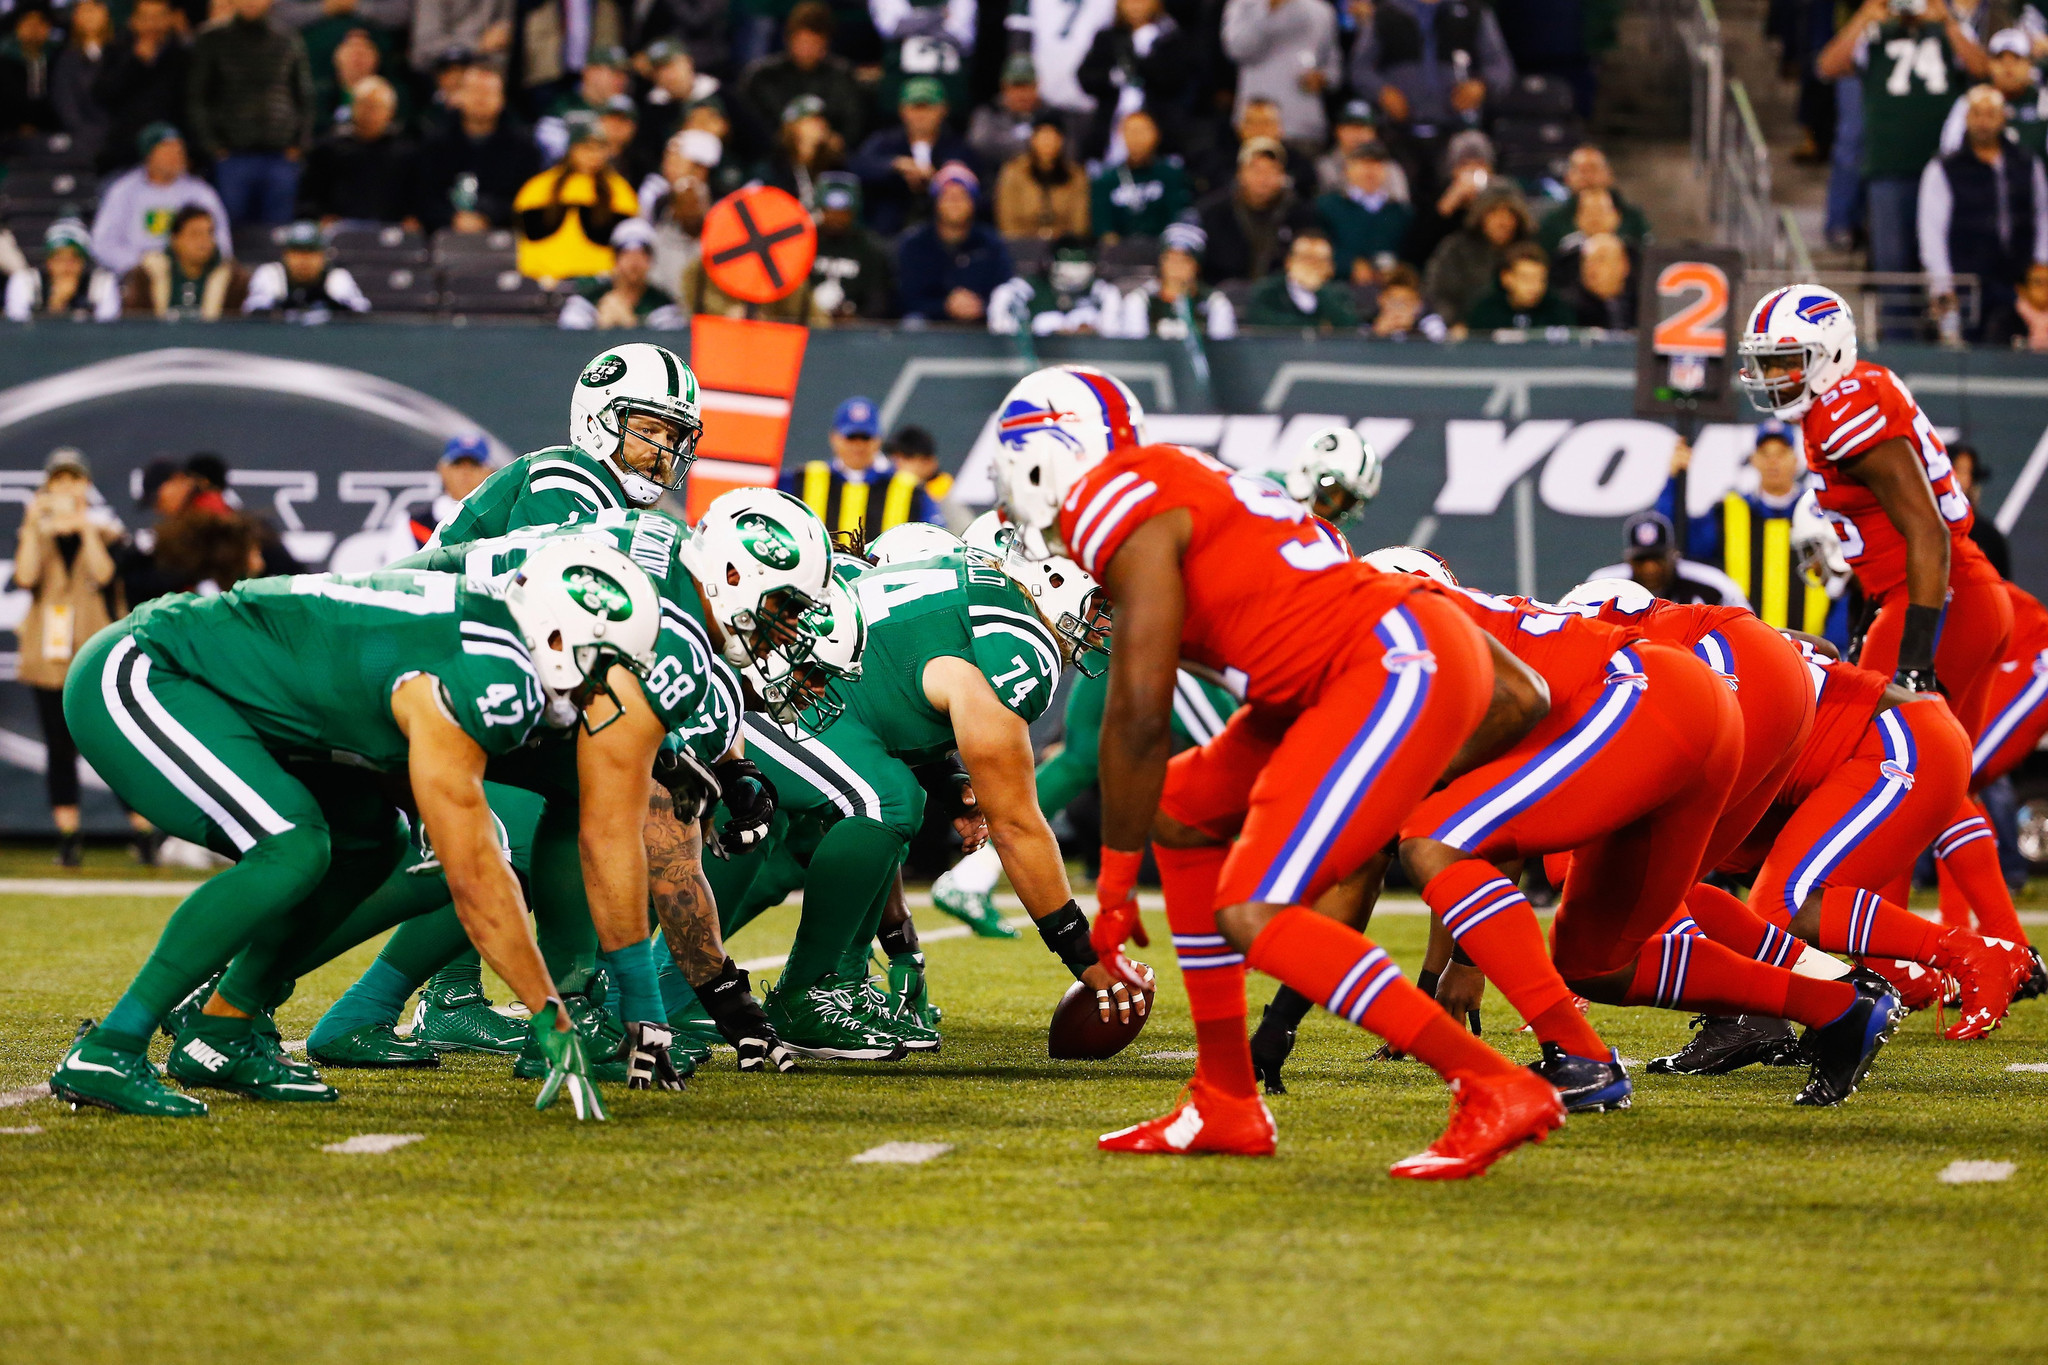 http://www.trbimg.com/img-56460c1c/turbine/la-sp-sn-jets-bills-uniforms-colorblind-viewers-20151113